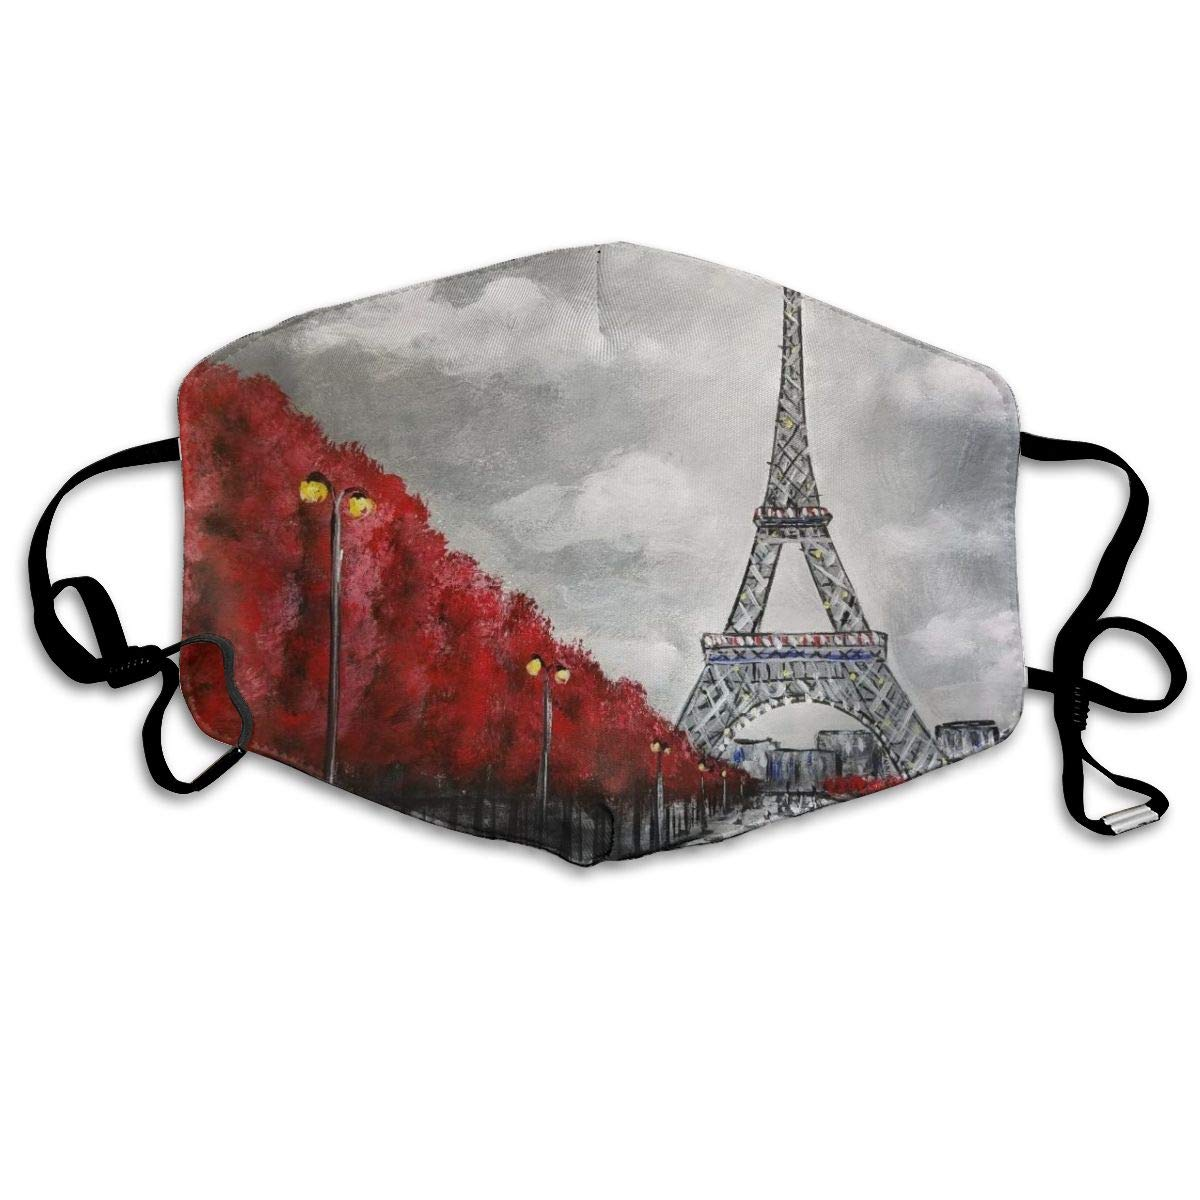 Mouth Mask Eiffel Tower Print Masks - Breathable Adjustable Windproof Mouth-Muffle, Camping Running For Women And Men